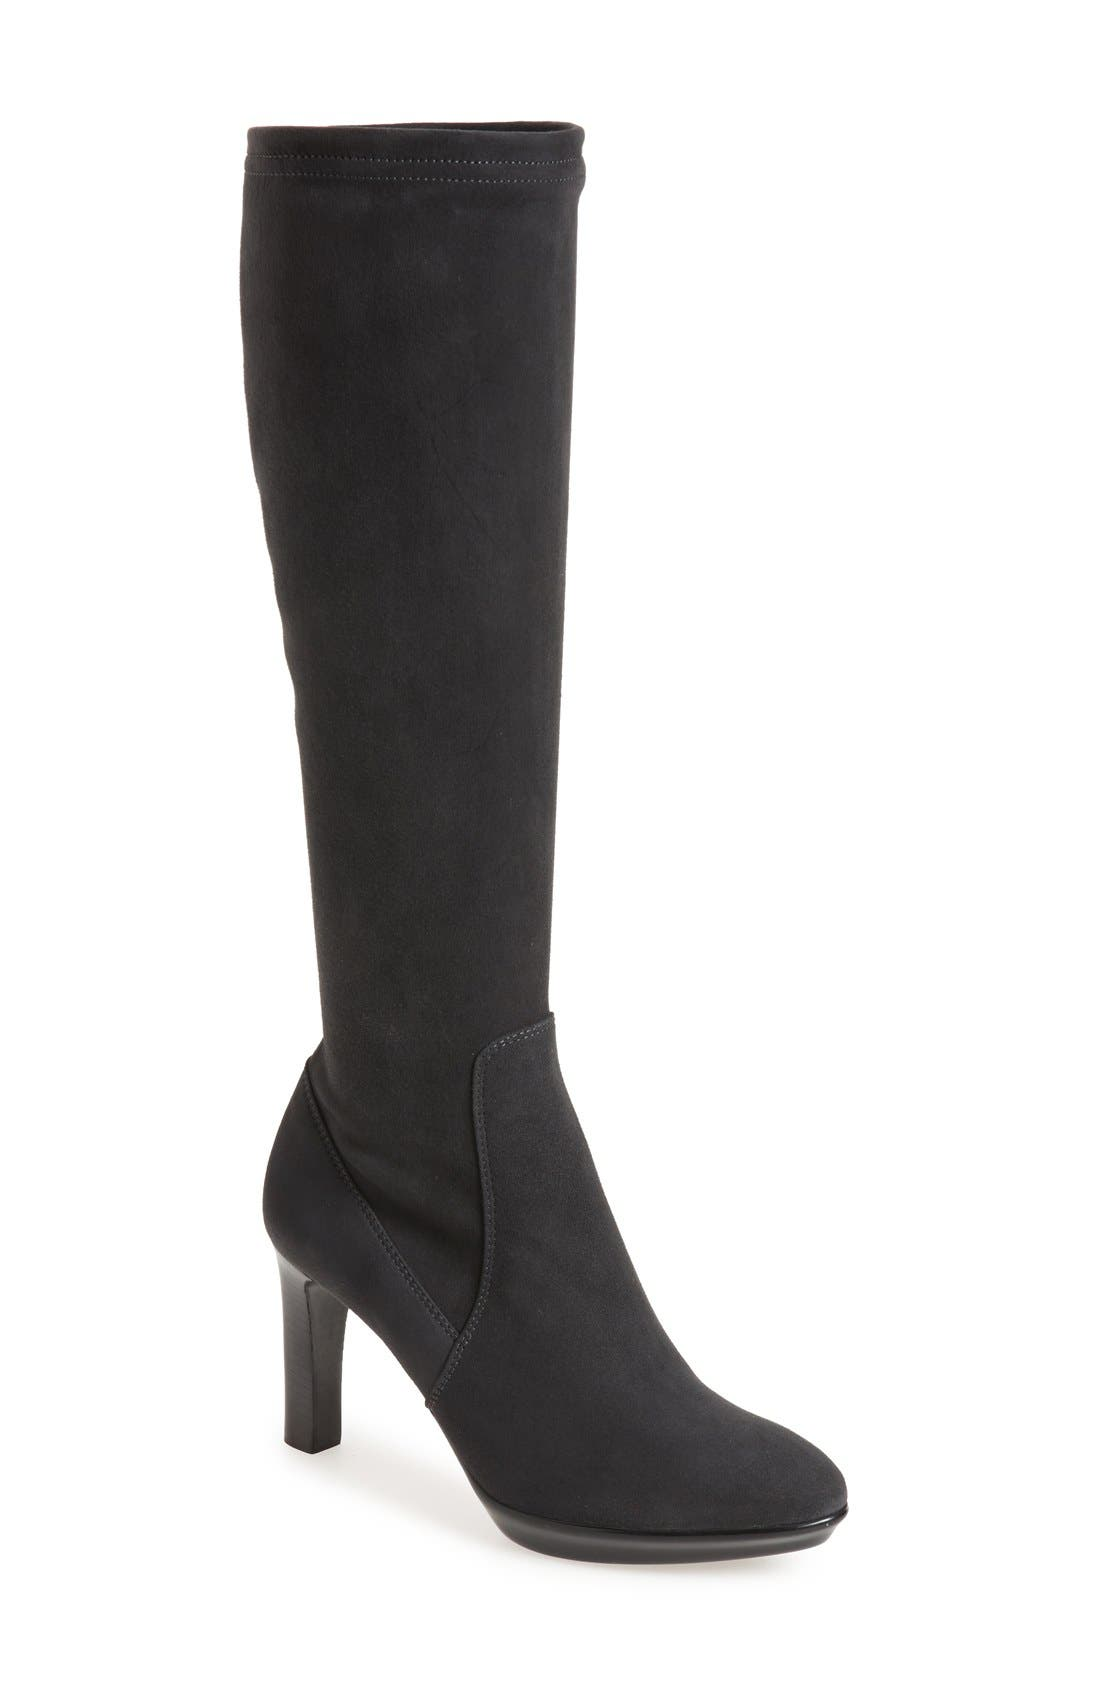 AQUATALIA 'Rumbah' Weatherproof Knee High Stretch Boot